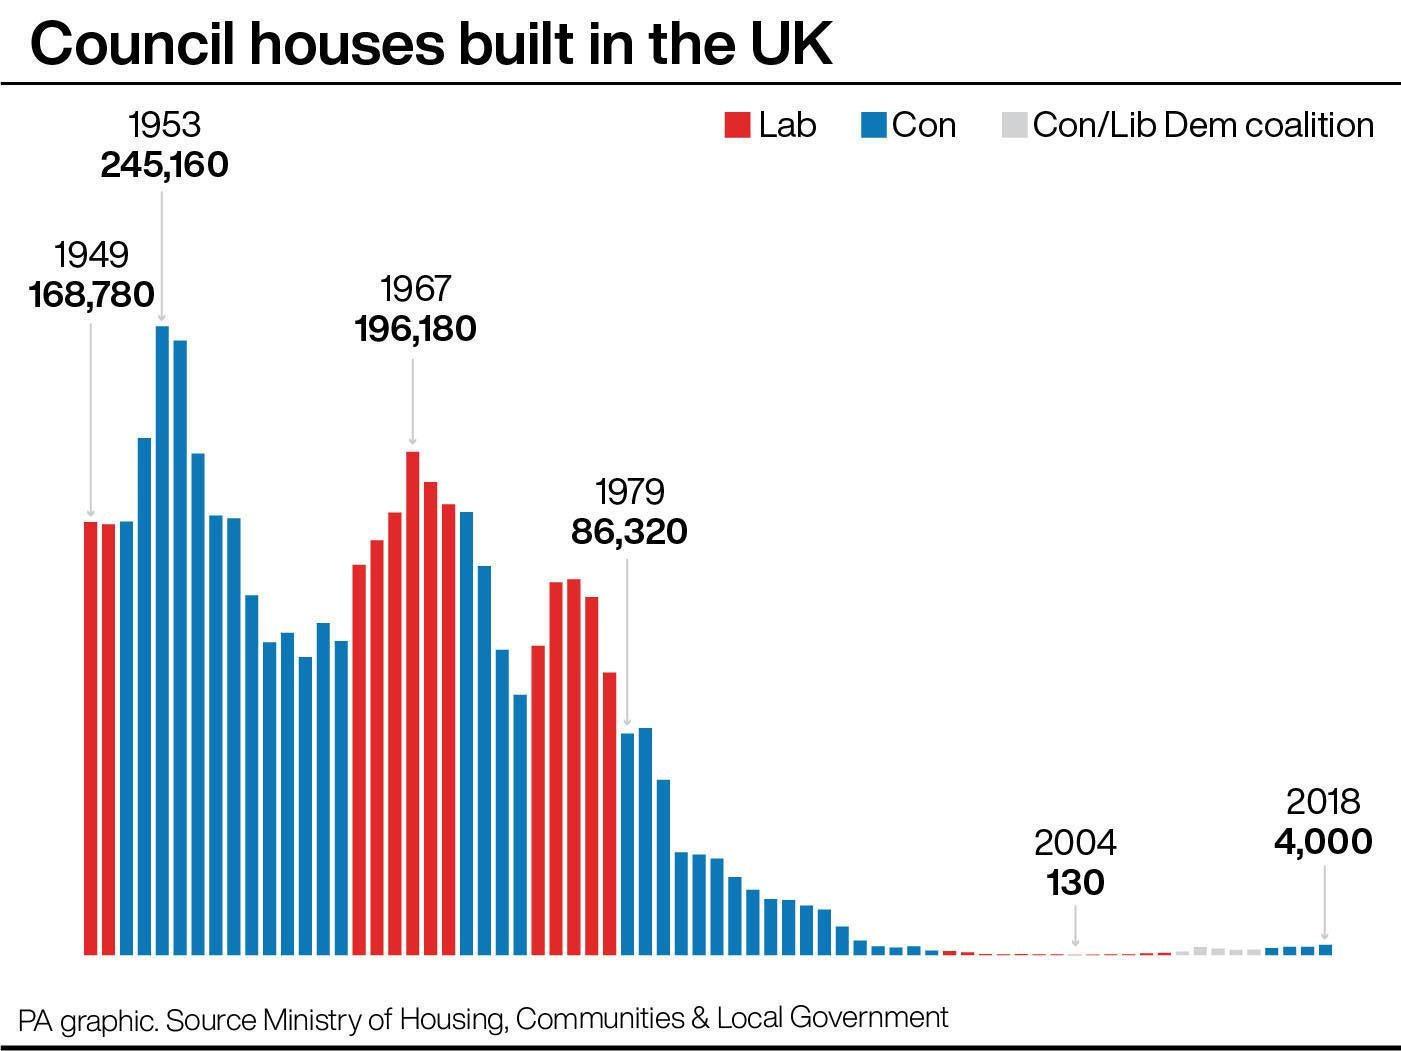 Council houses built in the UK